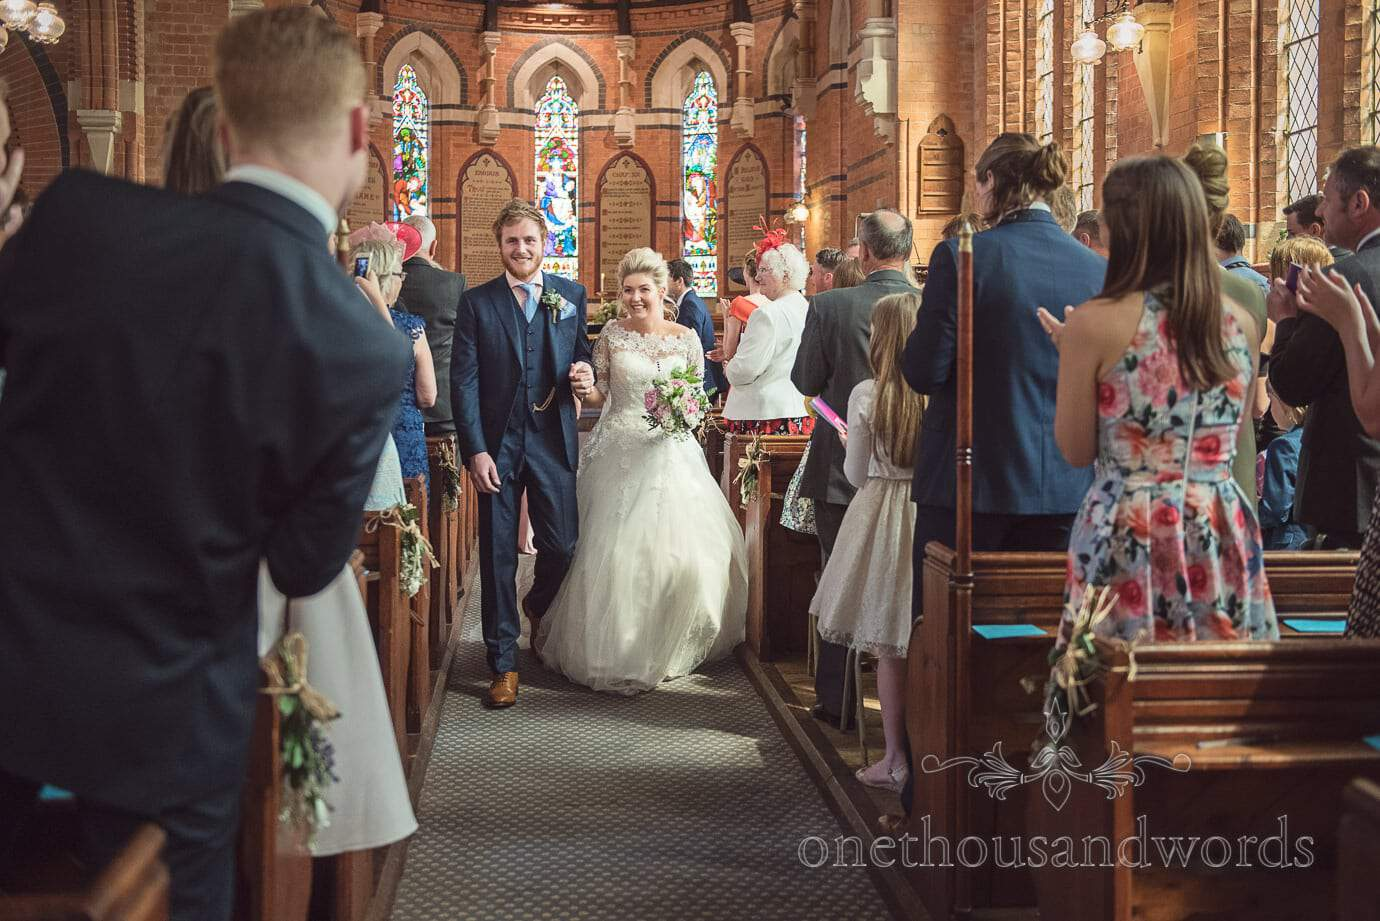 Bride and groom walk down the aisle together in red brick country church